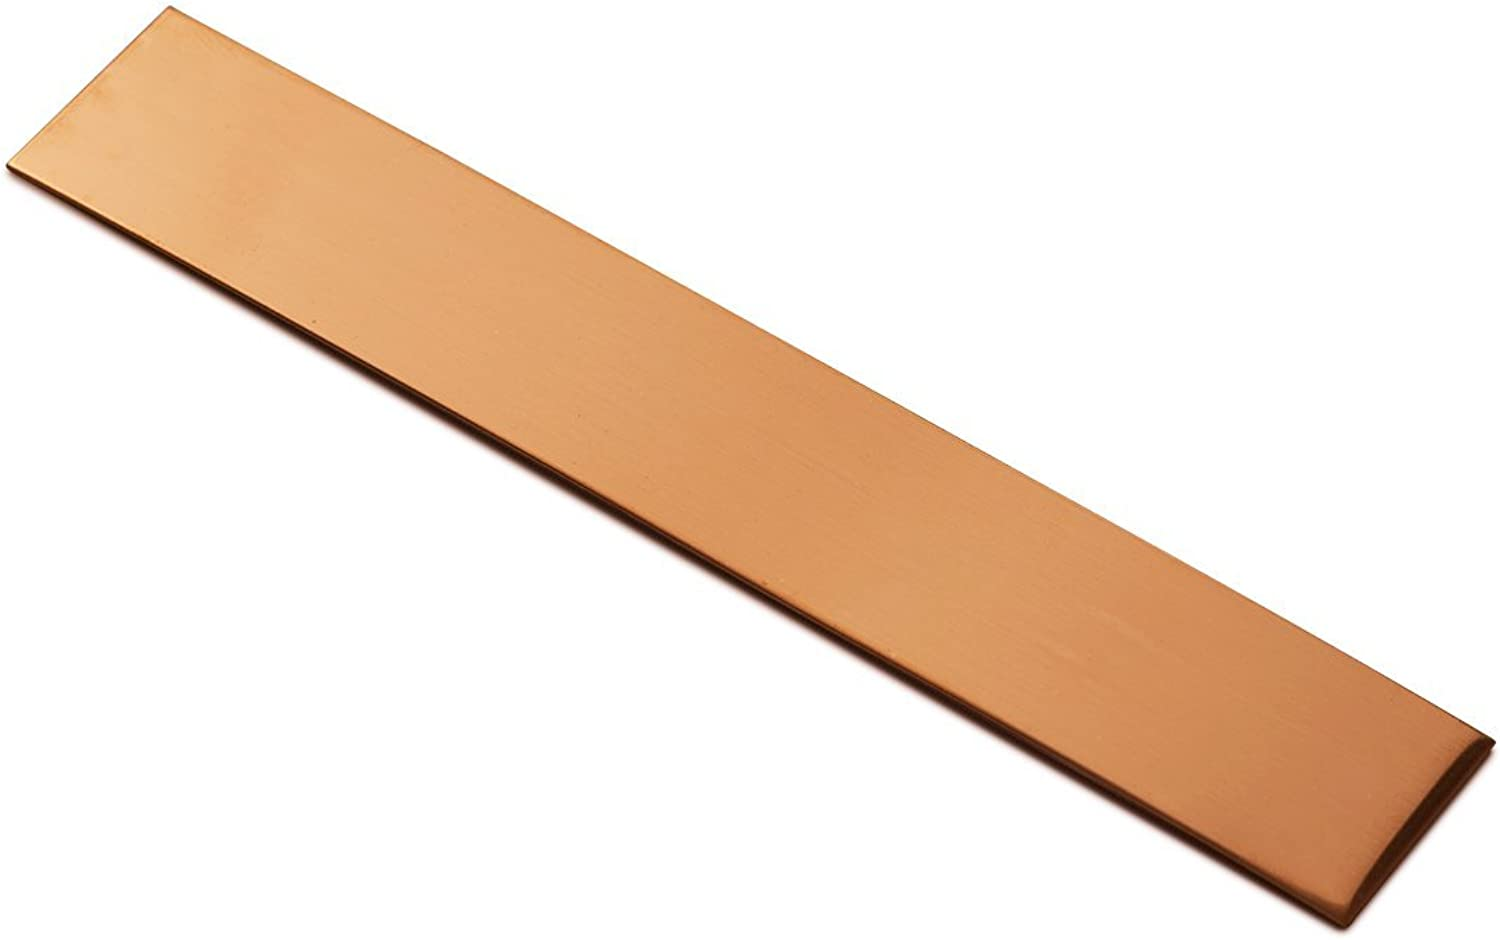 RMP Copper Bracelet Blanks  1 Width X 6 Length X .021 Thickness  10 Pack